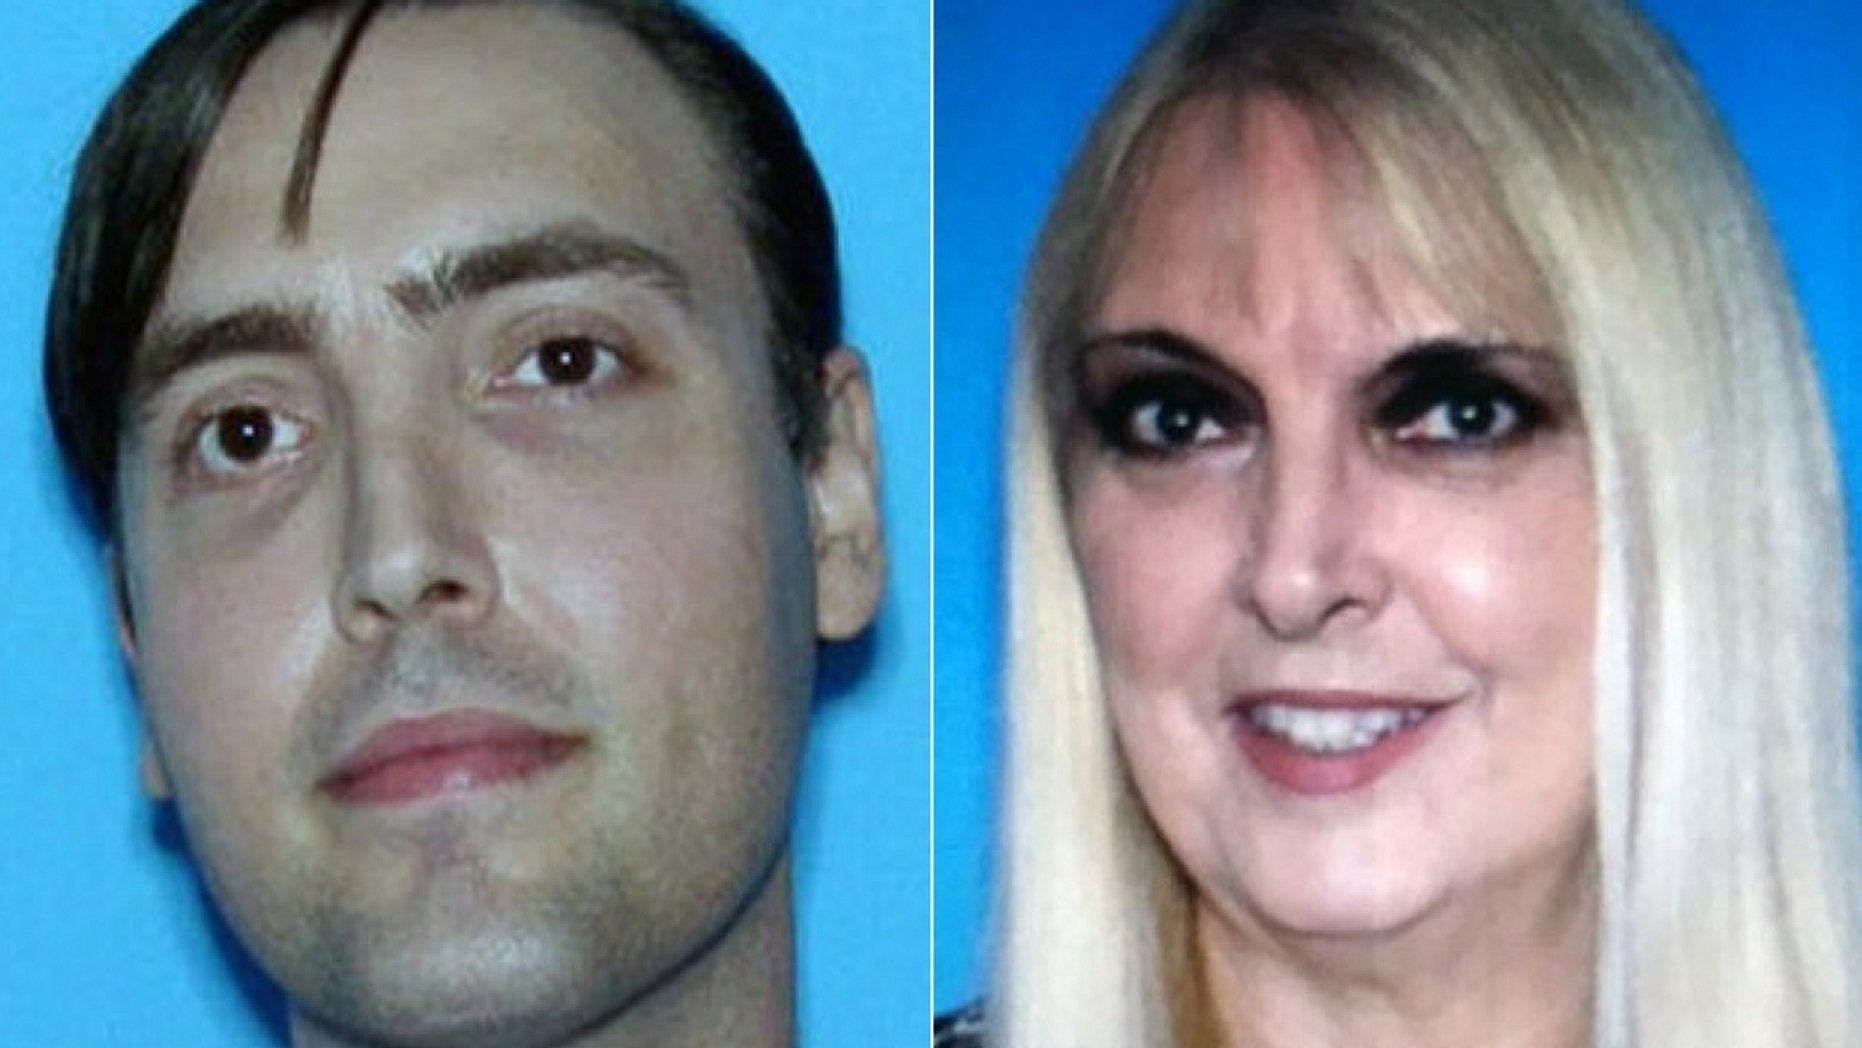 Lance Whatley, 40, allegedly killed his mother Kathie Whatley, 67, with a hammer before committing suicide by drowning.